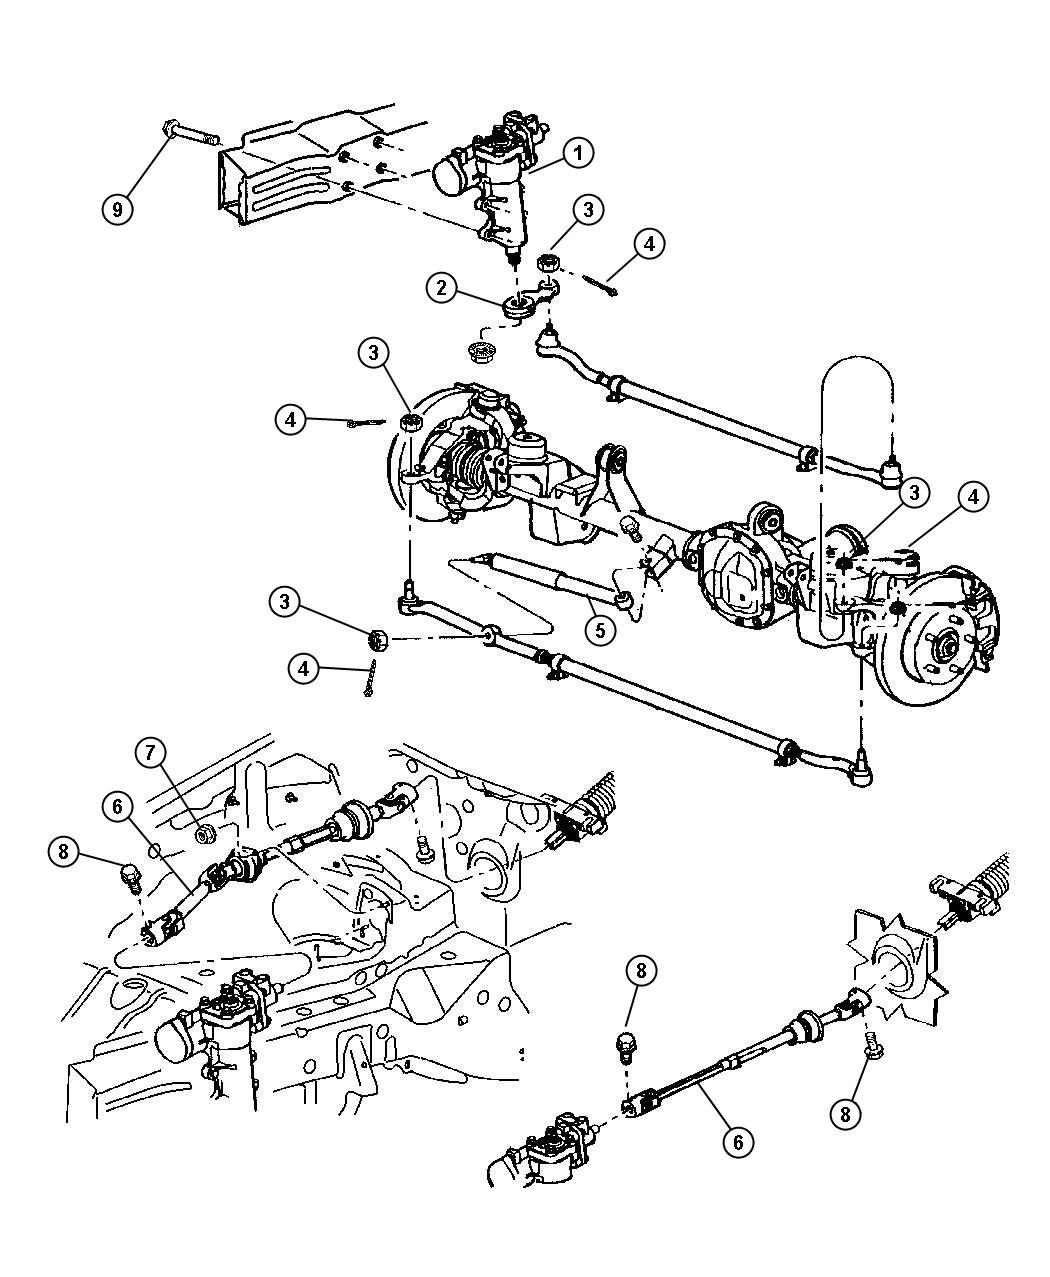 search jeep grand cherokee parts factory chrysler parts